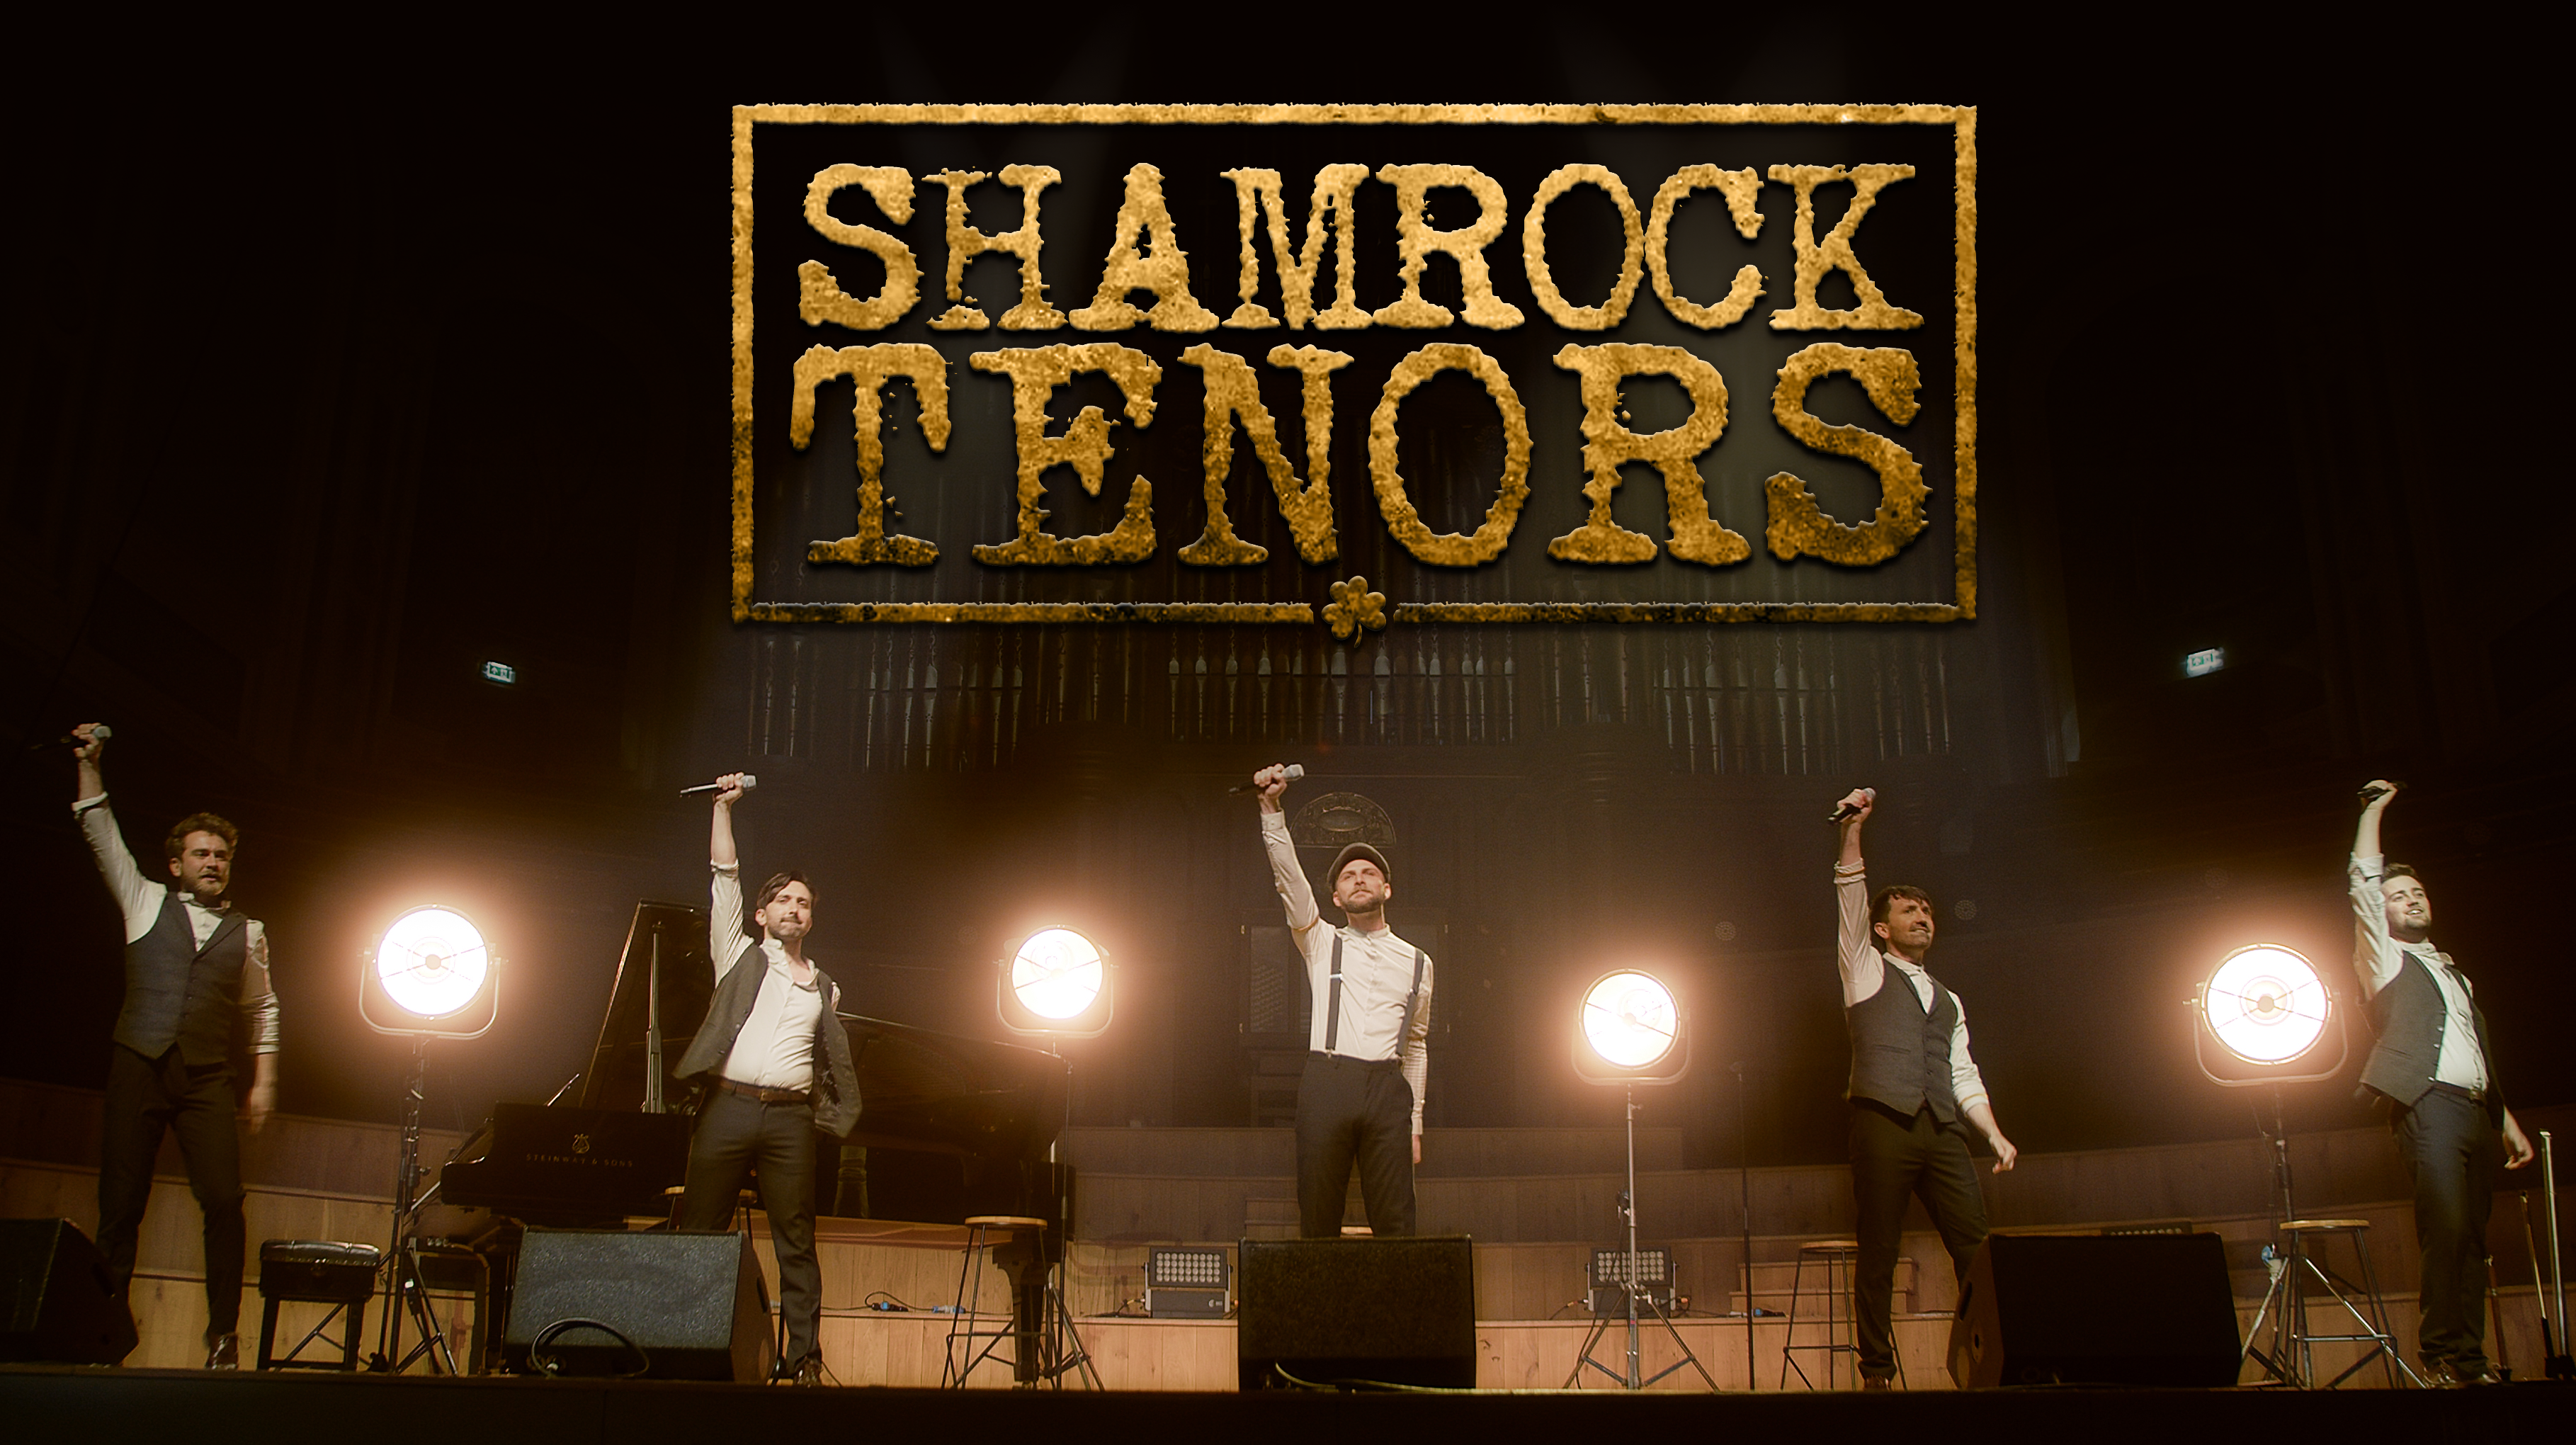 The Shamrock Tenors St Patrick's Day Concert live from Ulster Hall - Online